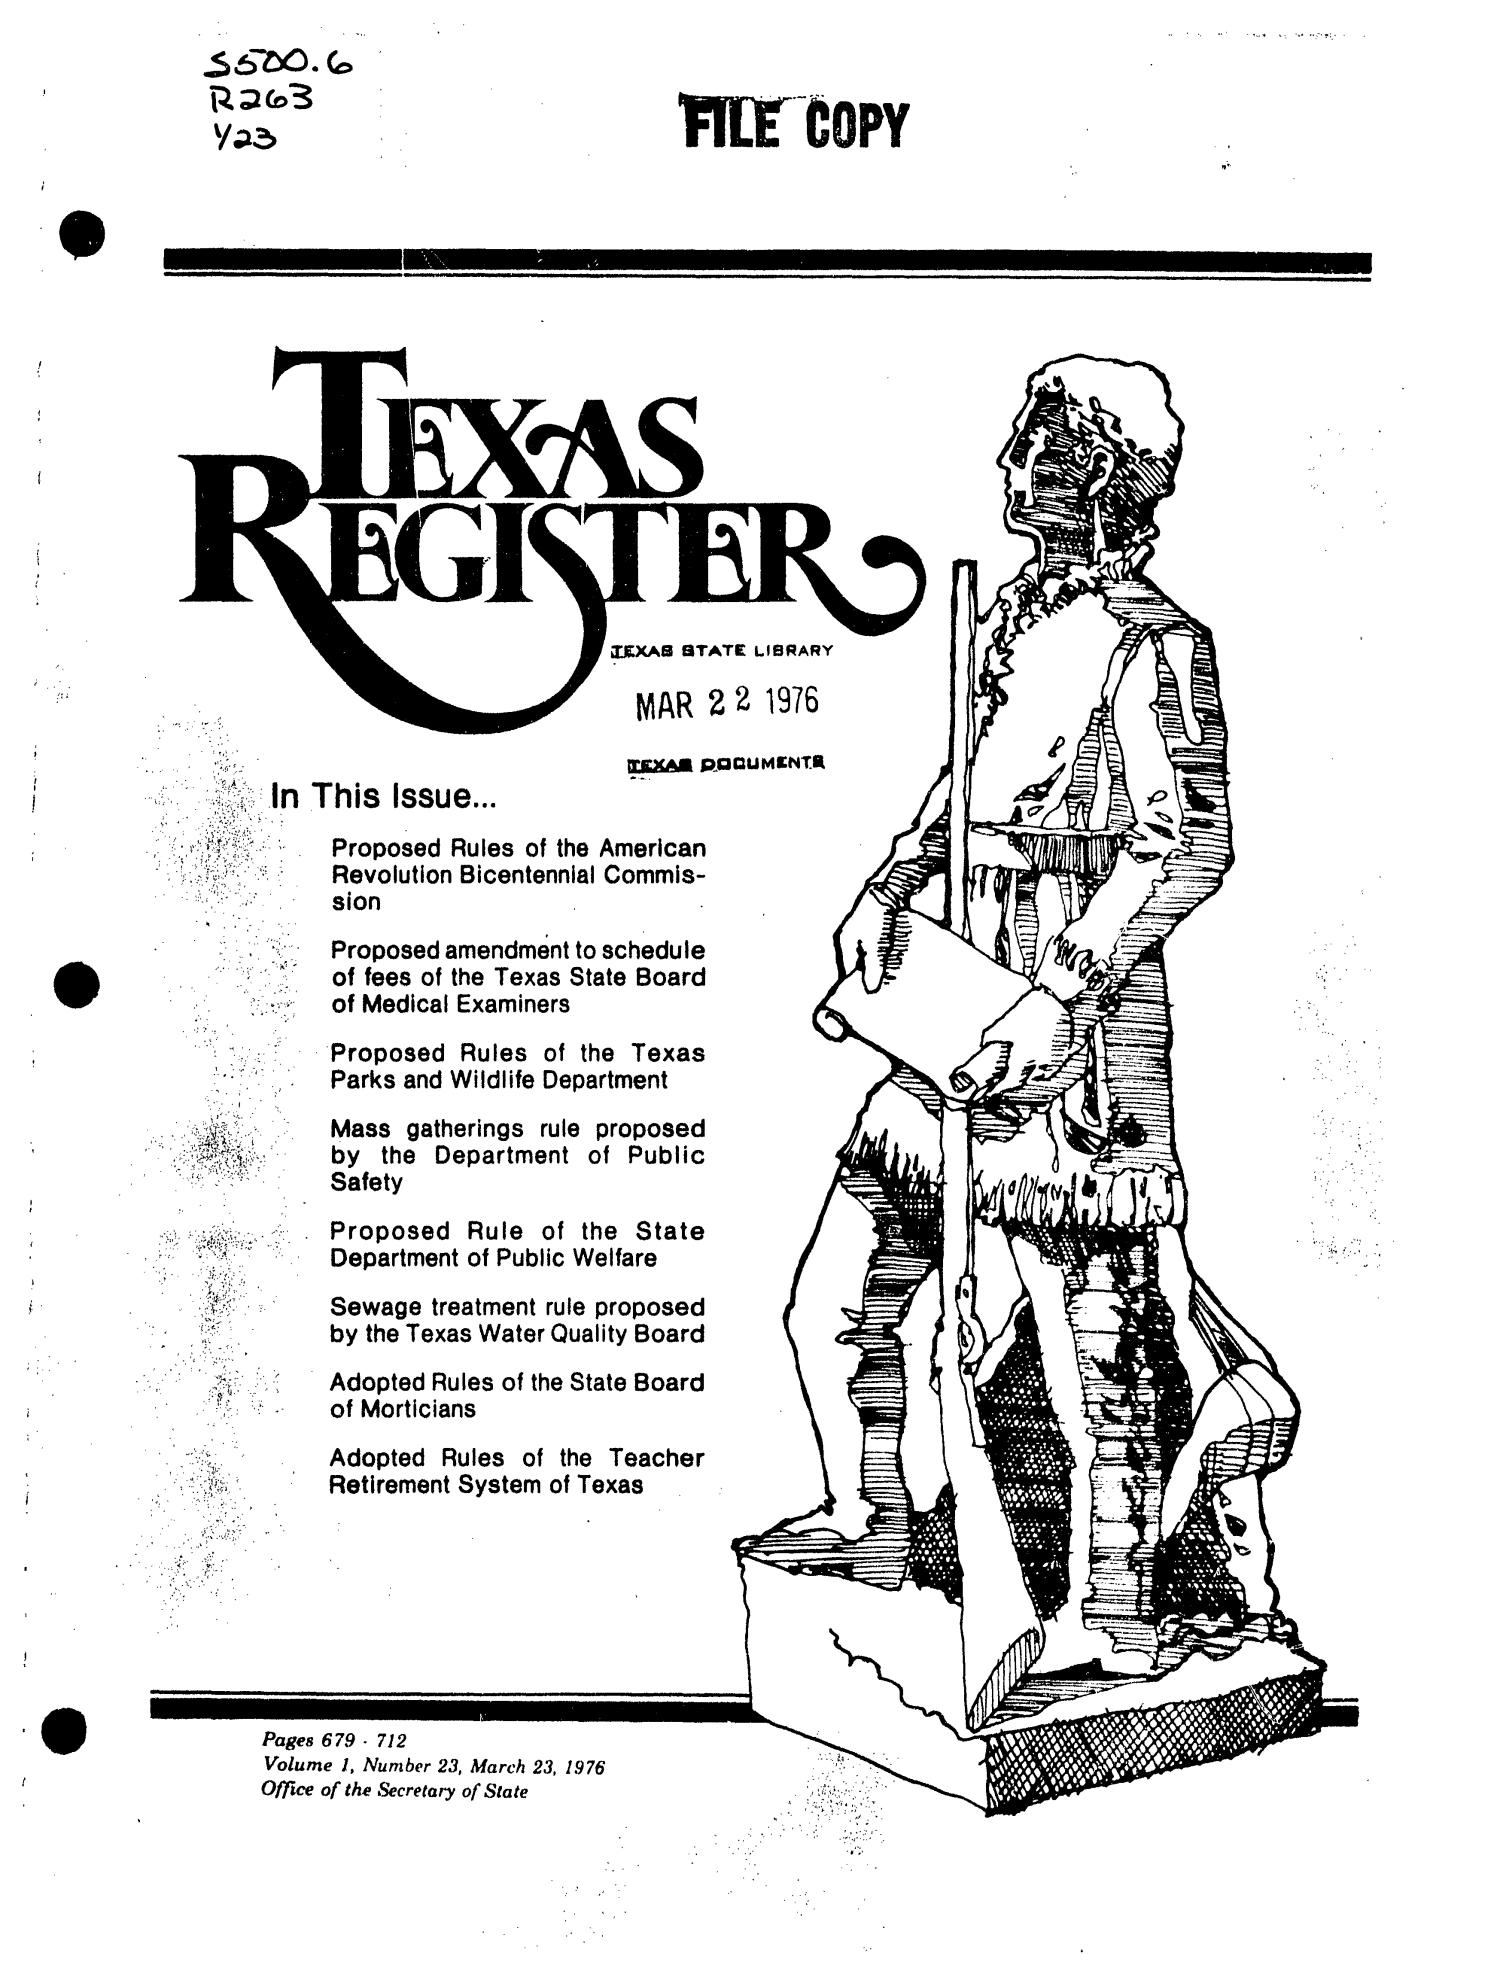 Texas Register, Volume 1, Number 23, Pages 679-712, March